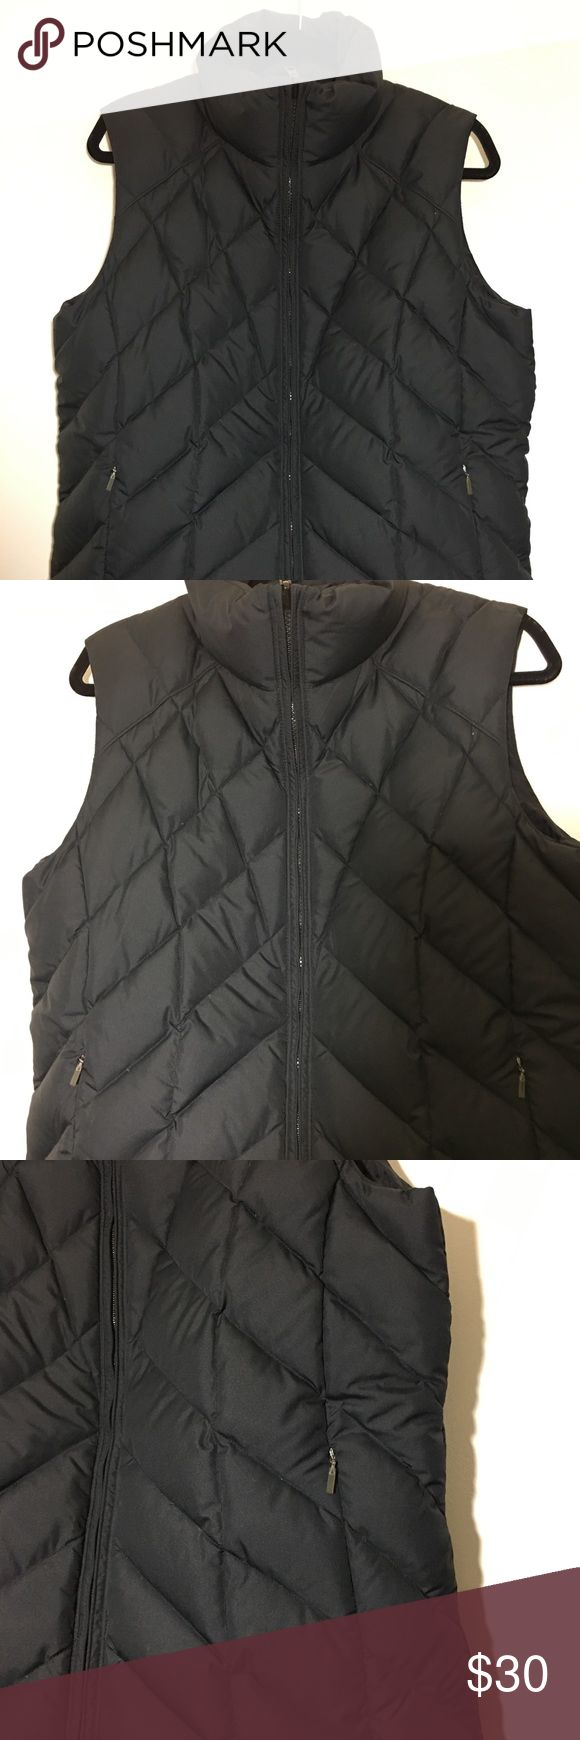 Columbia Down Puffer Snow Women's Vest Black - Lg Columbia core interchange puffer snow women's vest in size L. Please see photos for complete description.  Brand: Columbia  Style: Puffer snow vest  Size: L Color: Black Columbia Jackets & Coats Vests